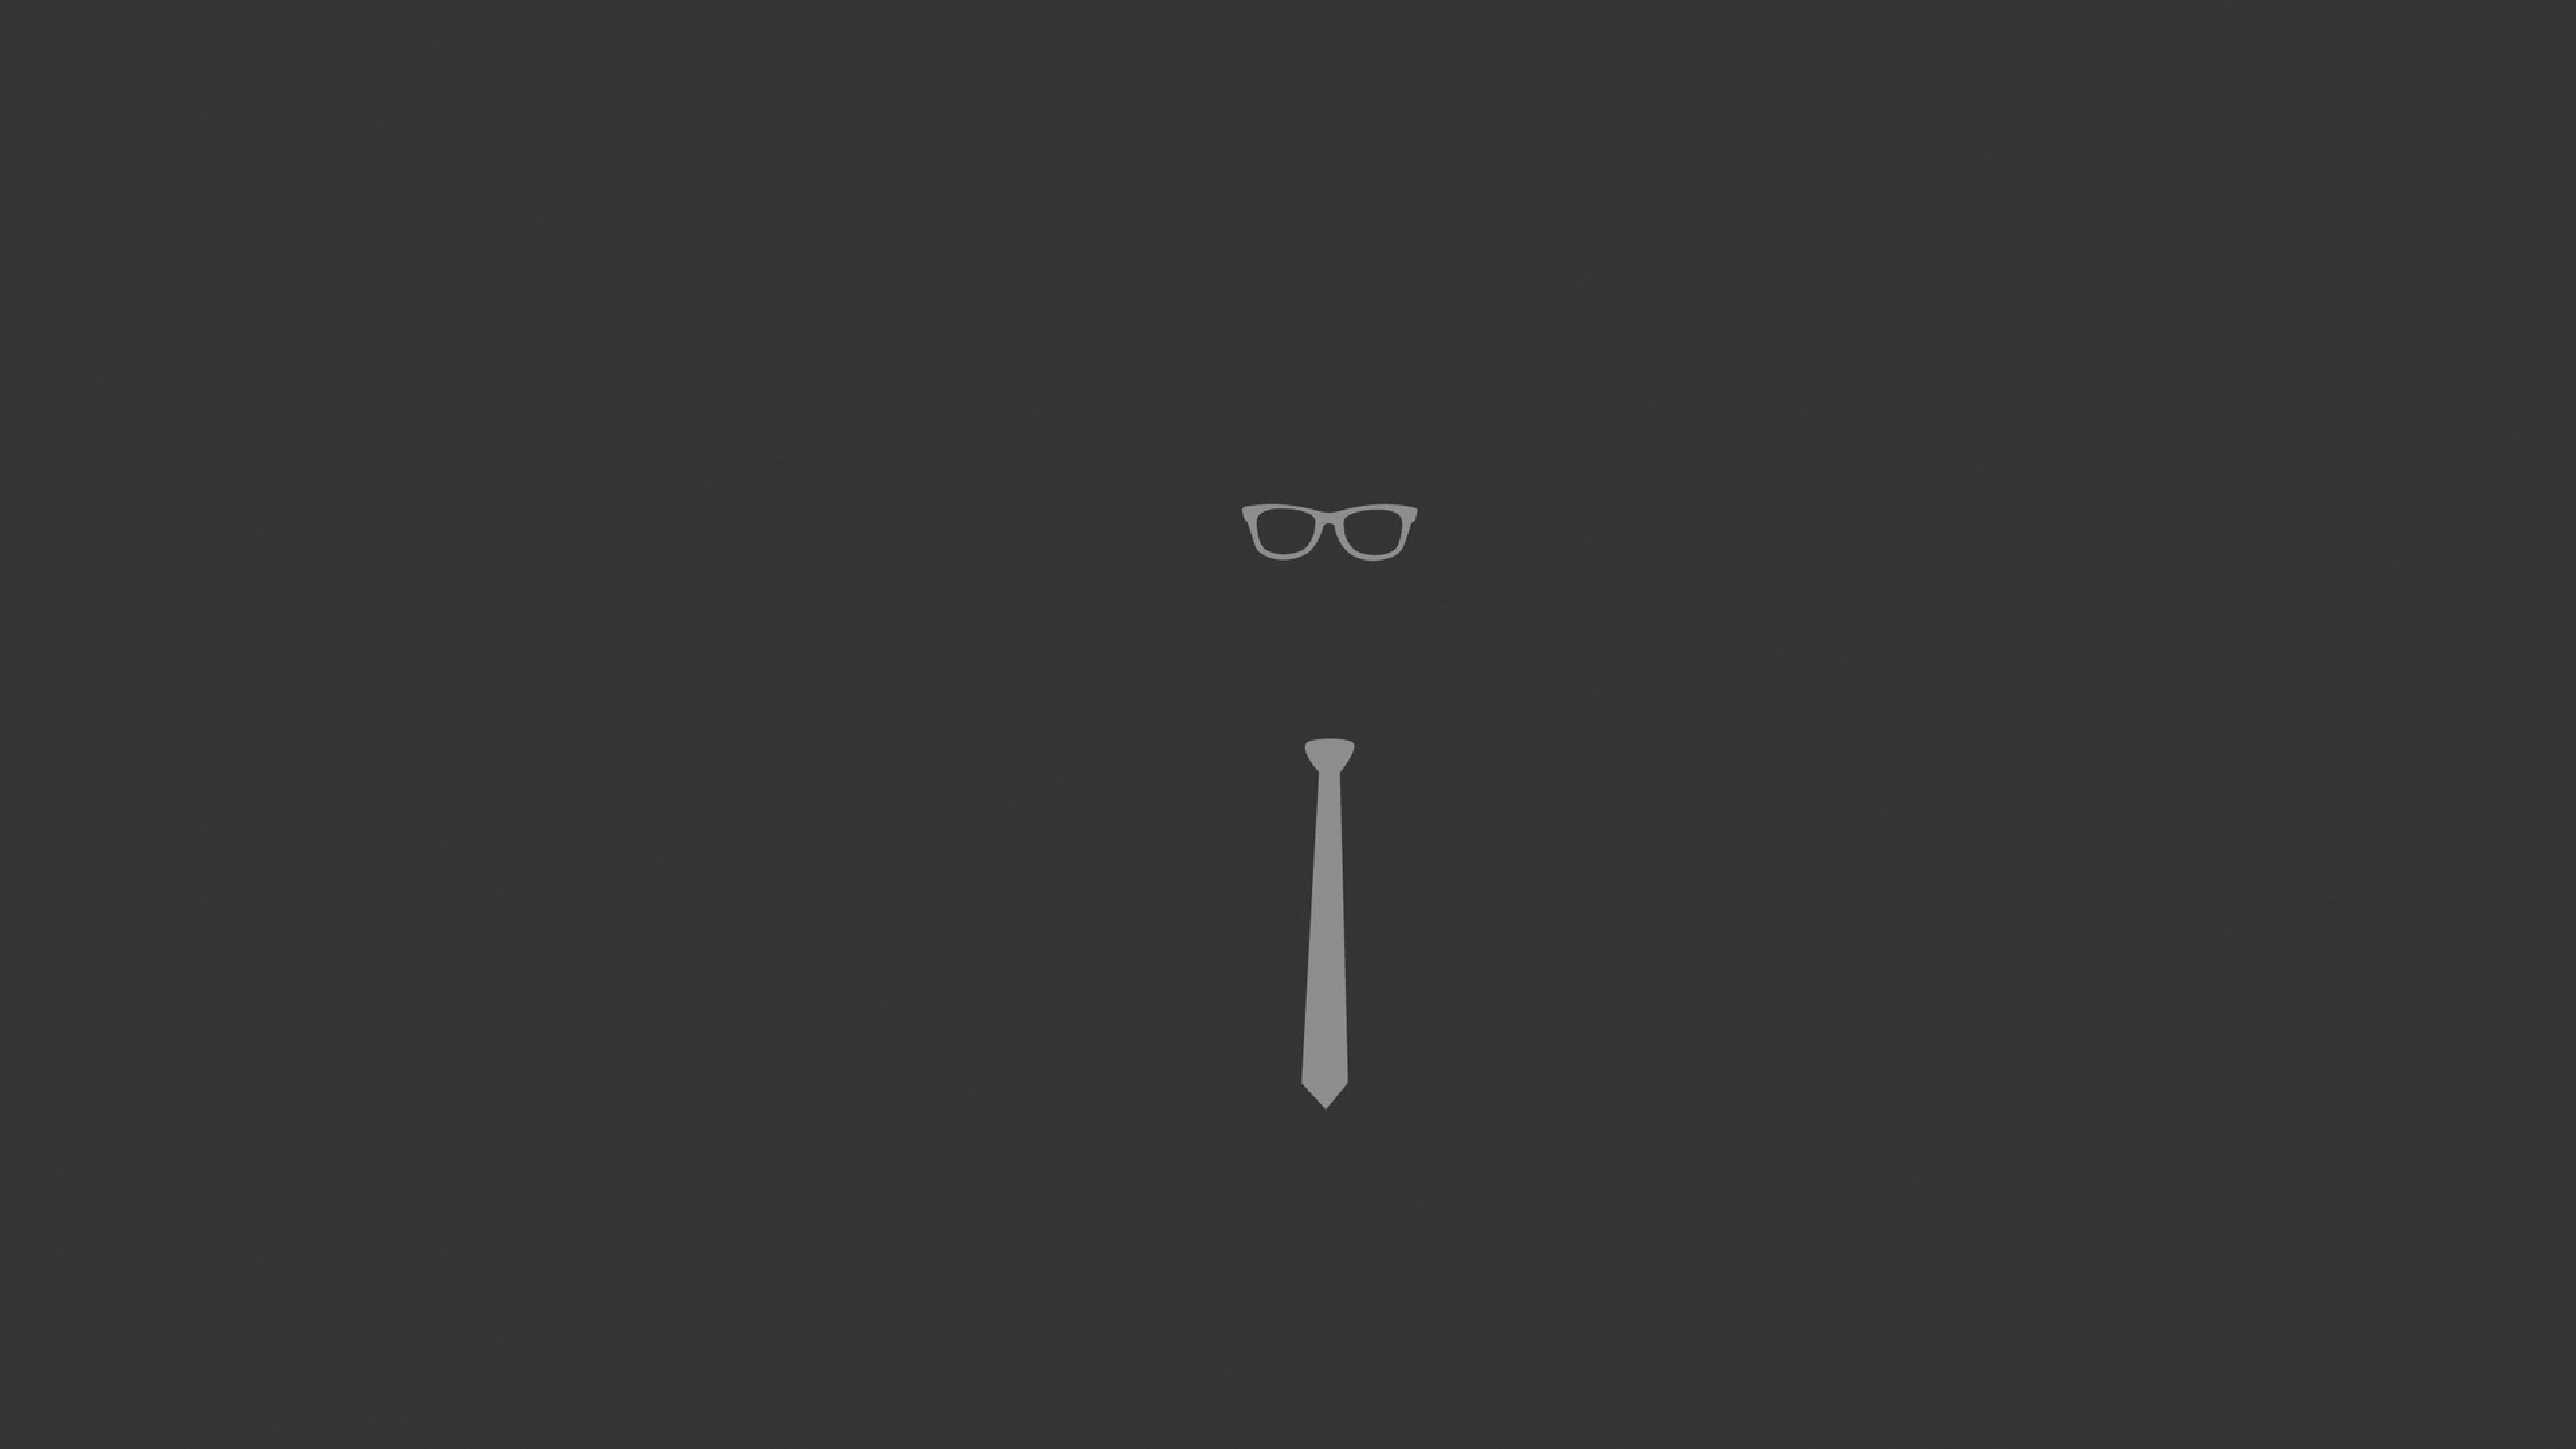 Download Wallpaper 3840x2160 tie glasses graphic minimalist 4K 3840x2160